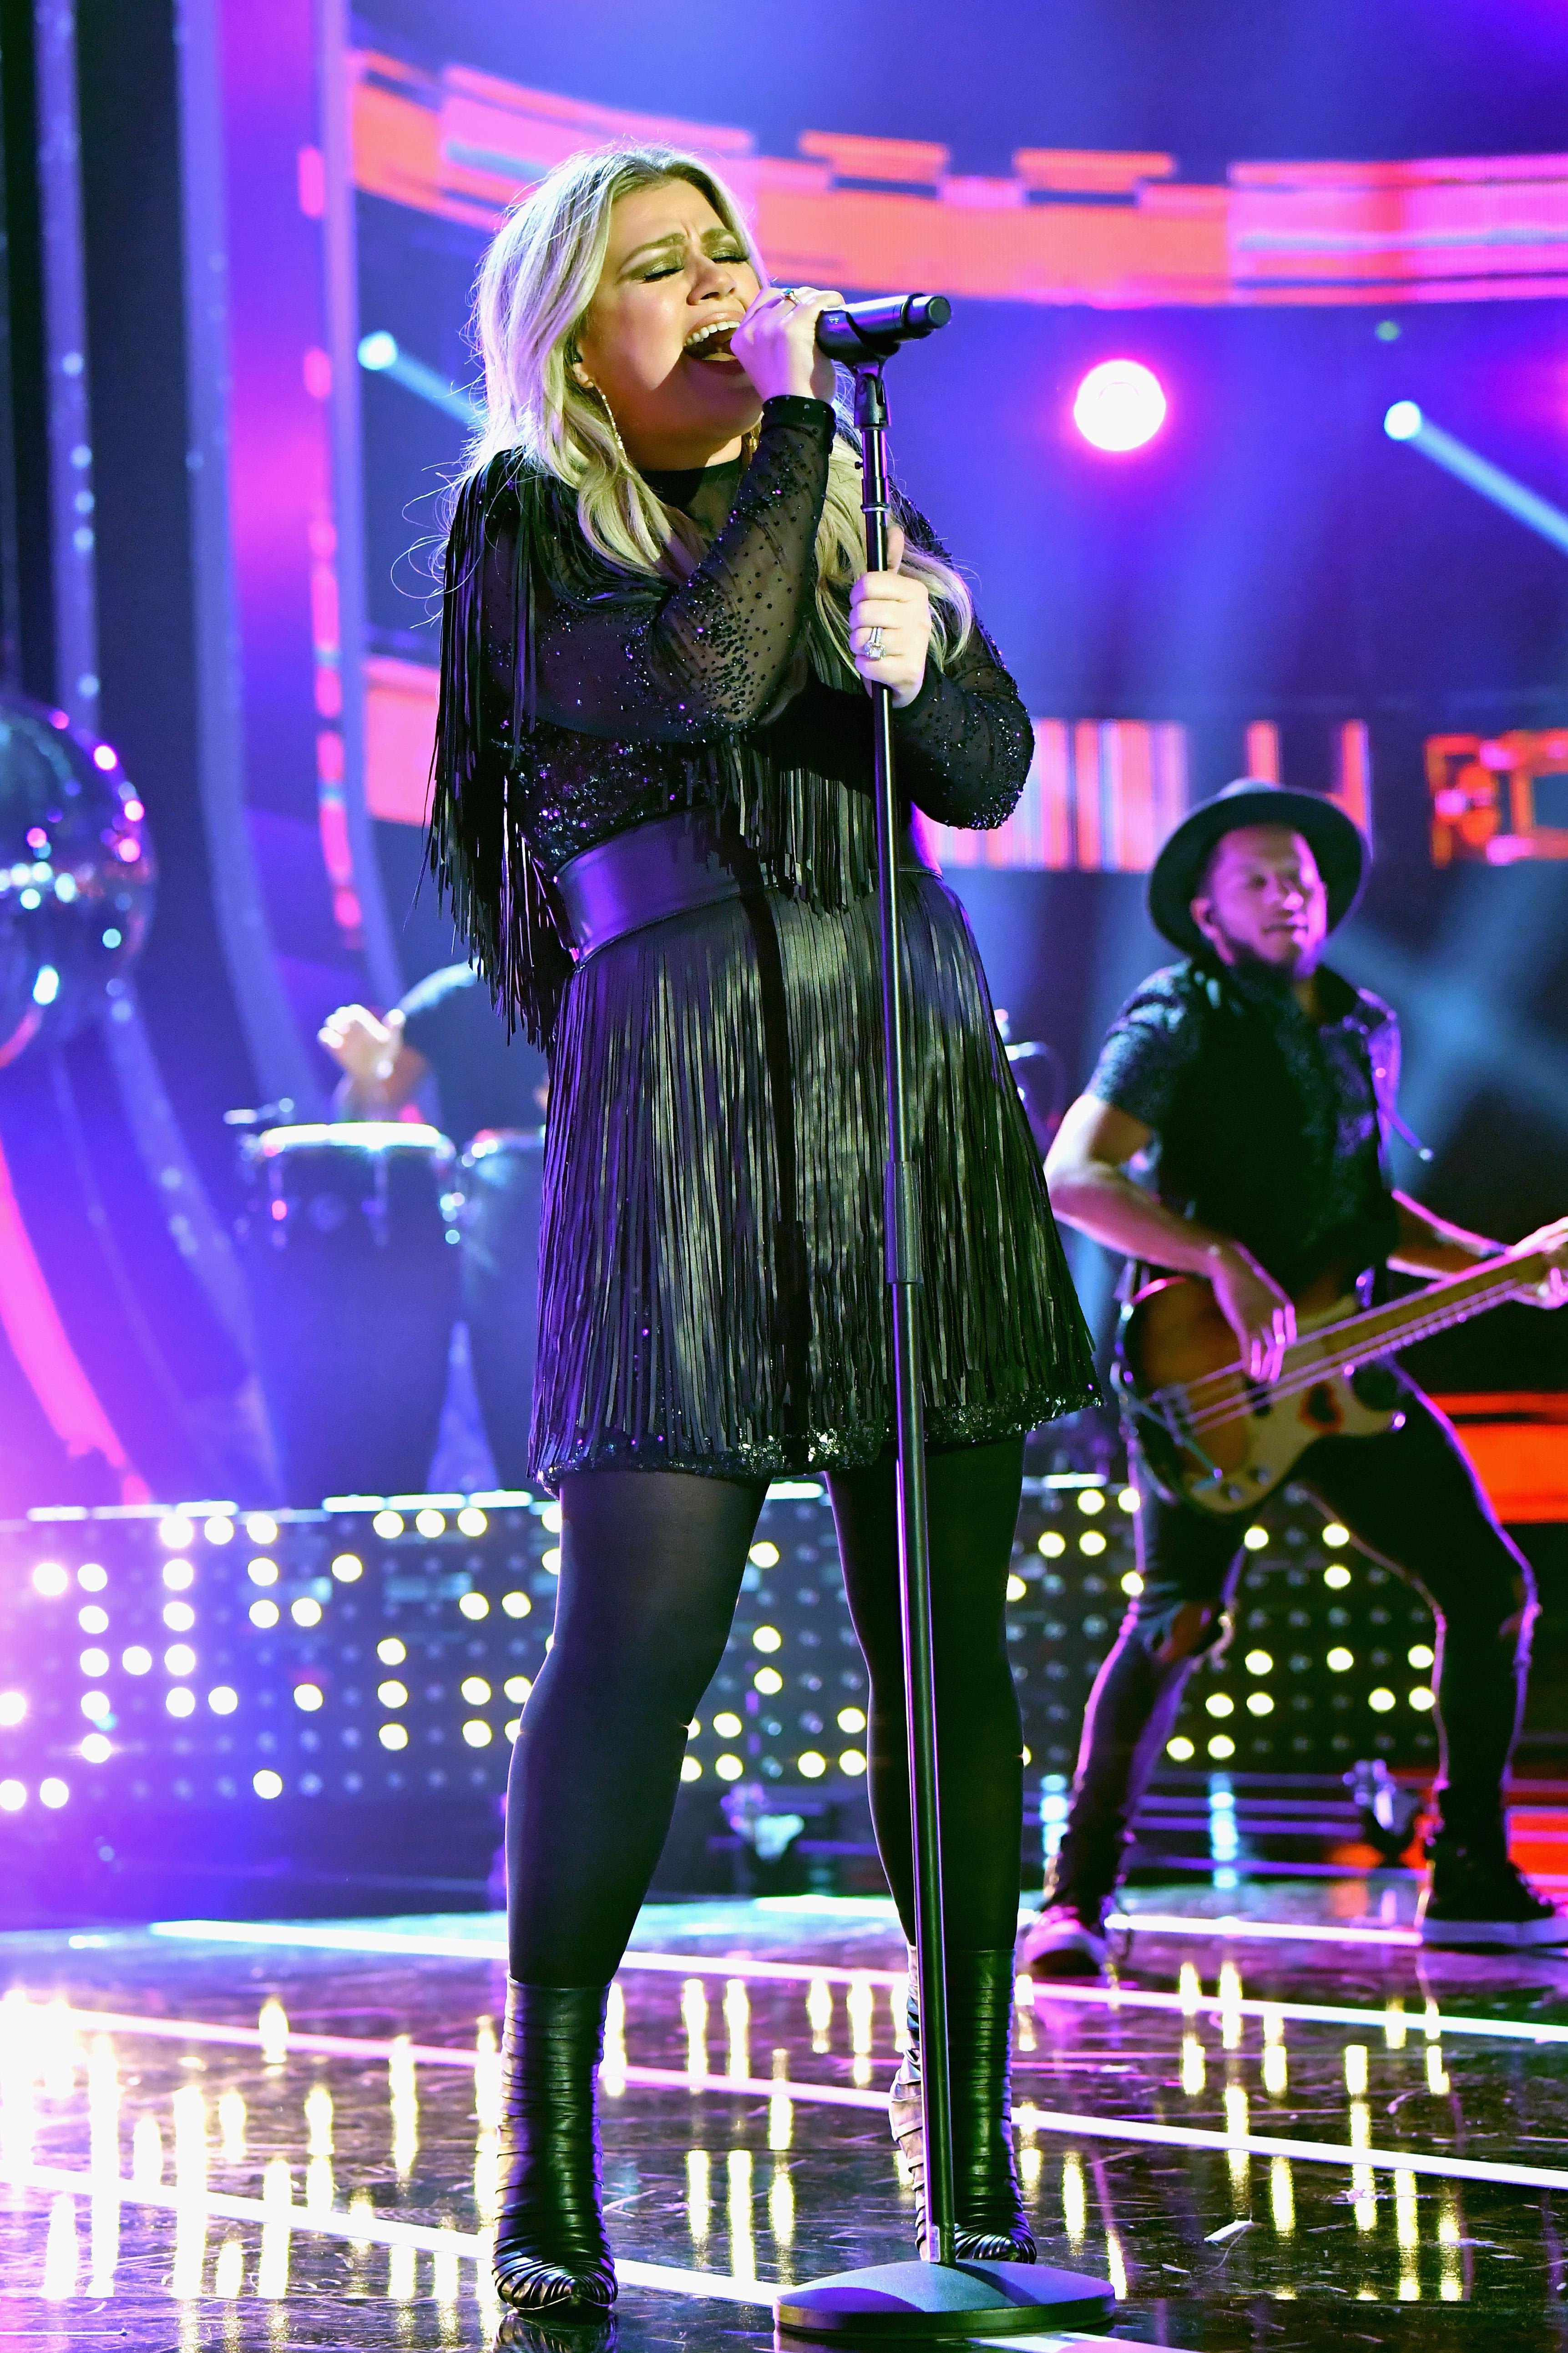 Kelly Clarkson wins CMT Awards with American Woman cover